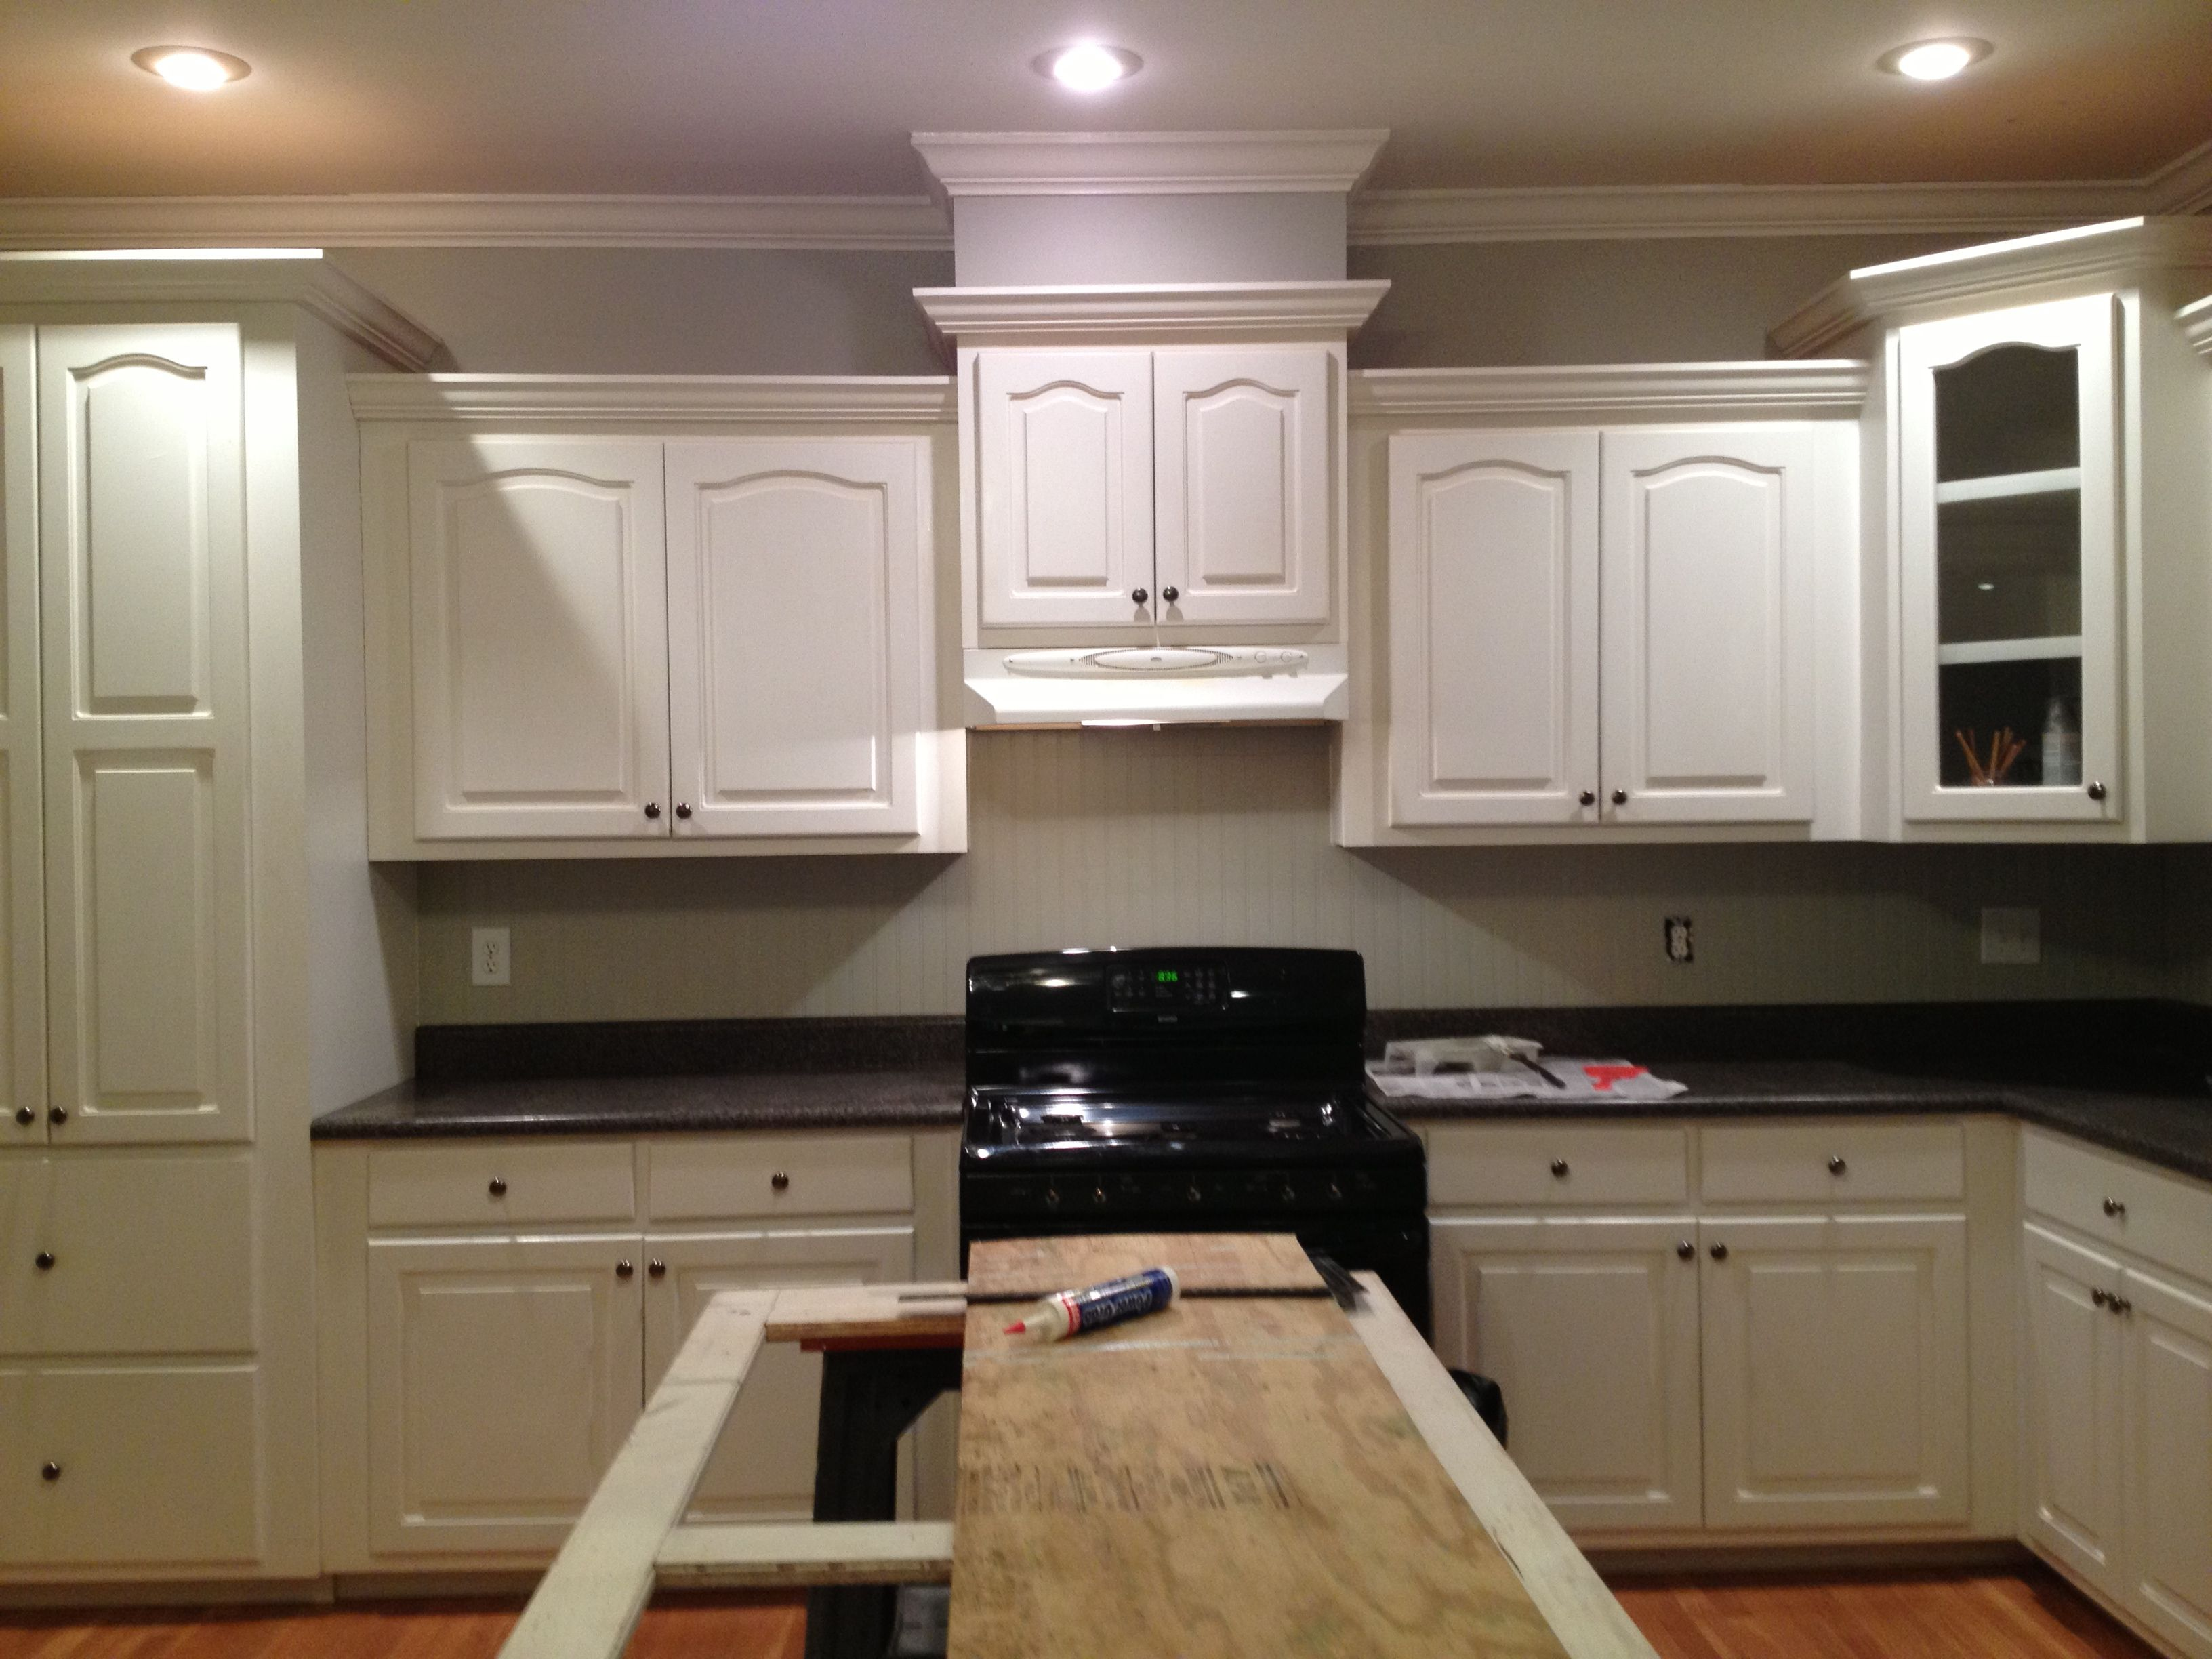 benjamin moore winterwood white and light gray kitchen on interior wall colors id=62899